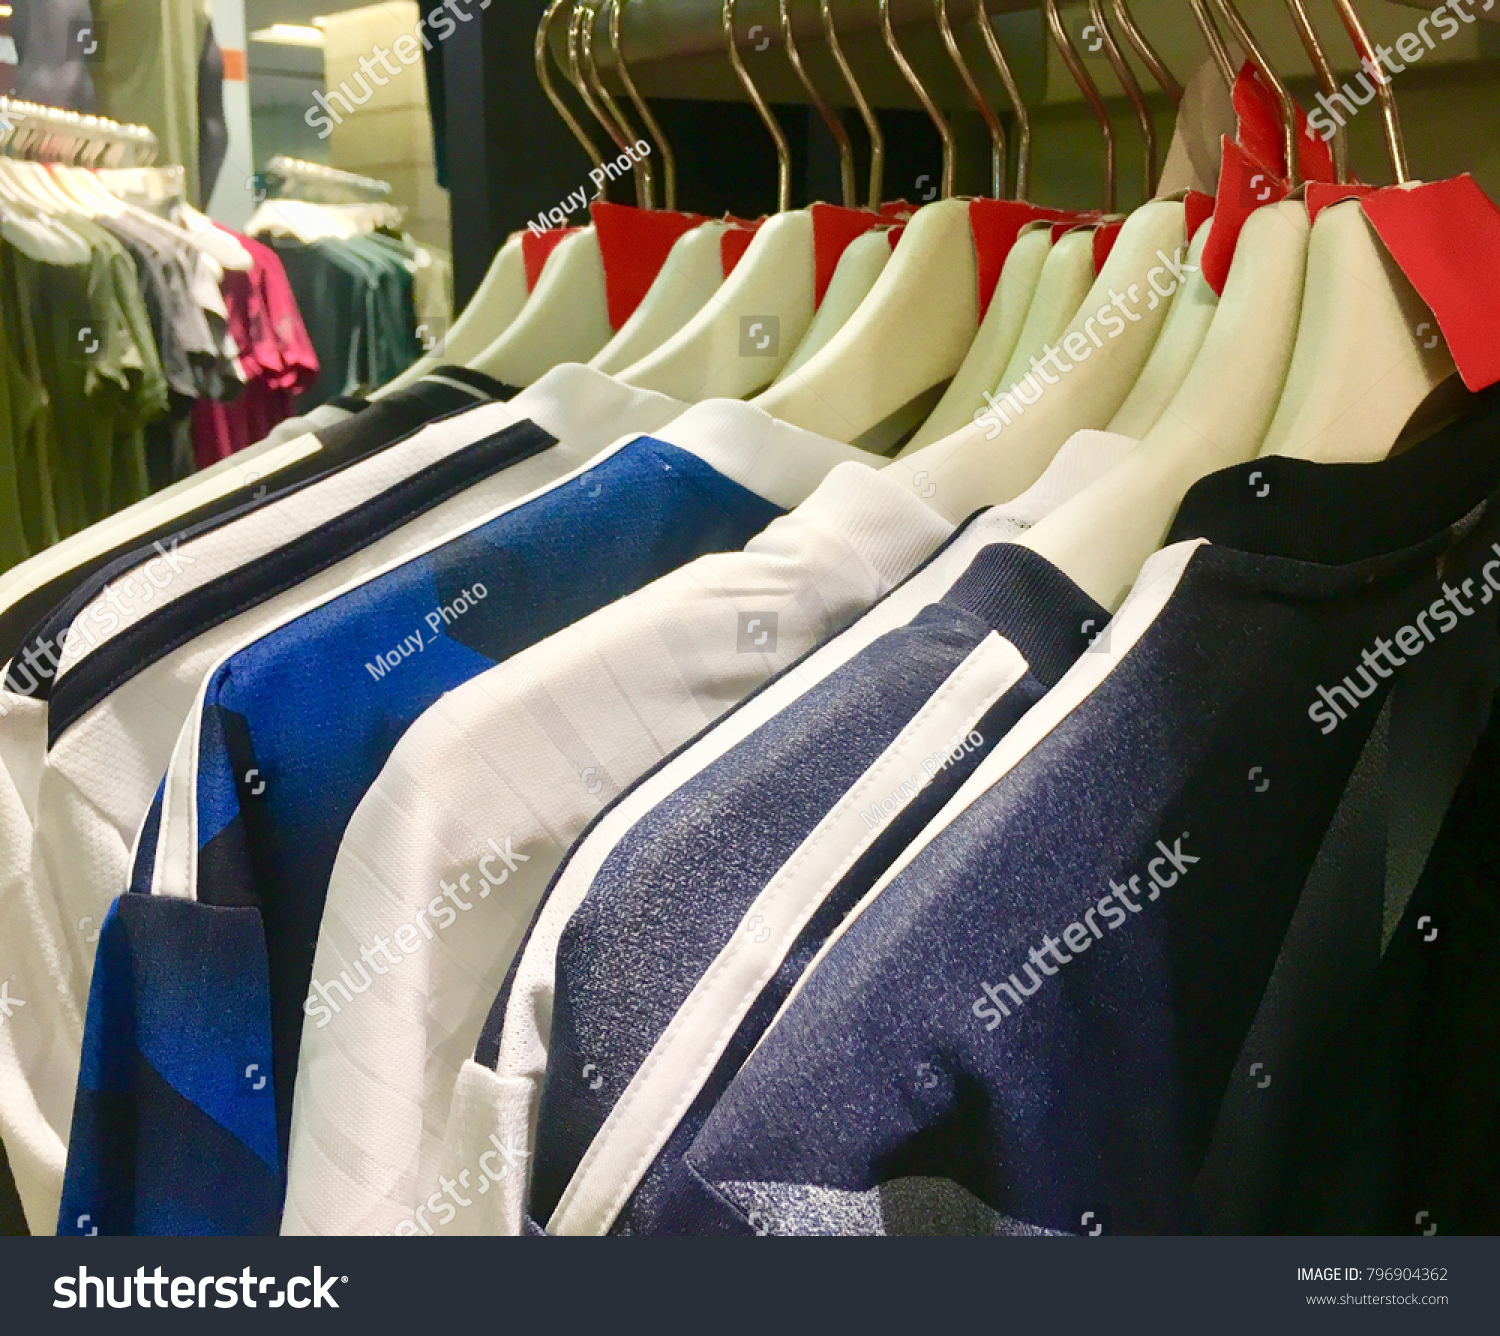 a5091b741cffa Sport t-shirts hanging on hanger in a sport clothing store. Concept be used  for business sport clothing store. Blur picture. - Image